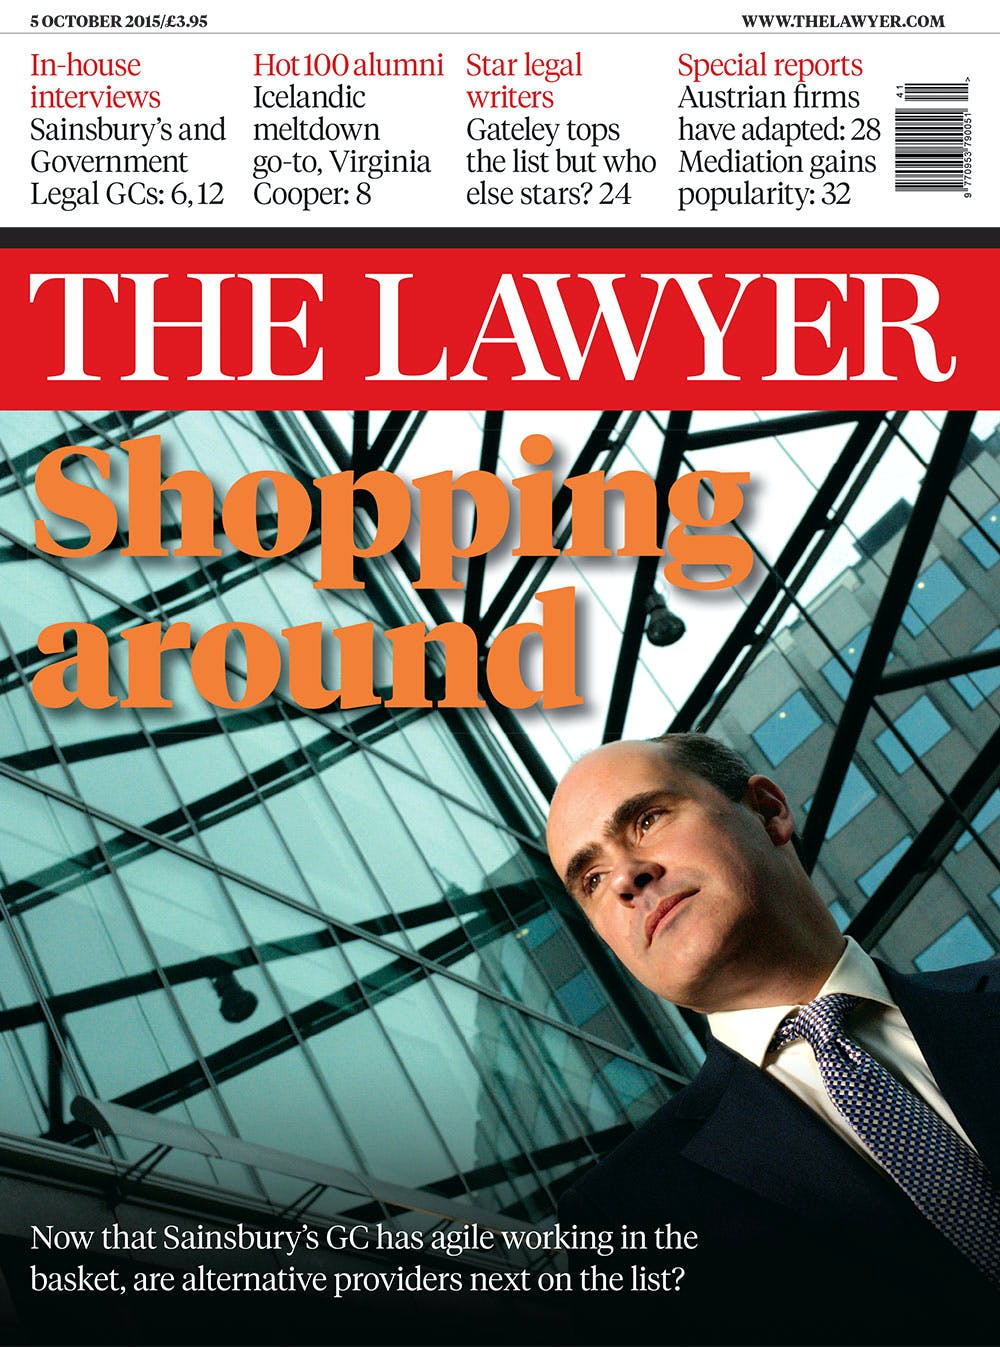 The Lawyer 5 October 2015 cover